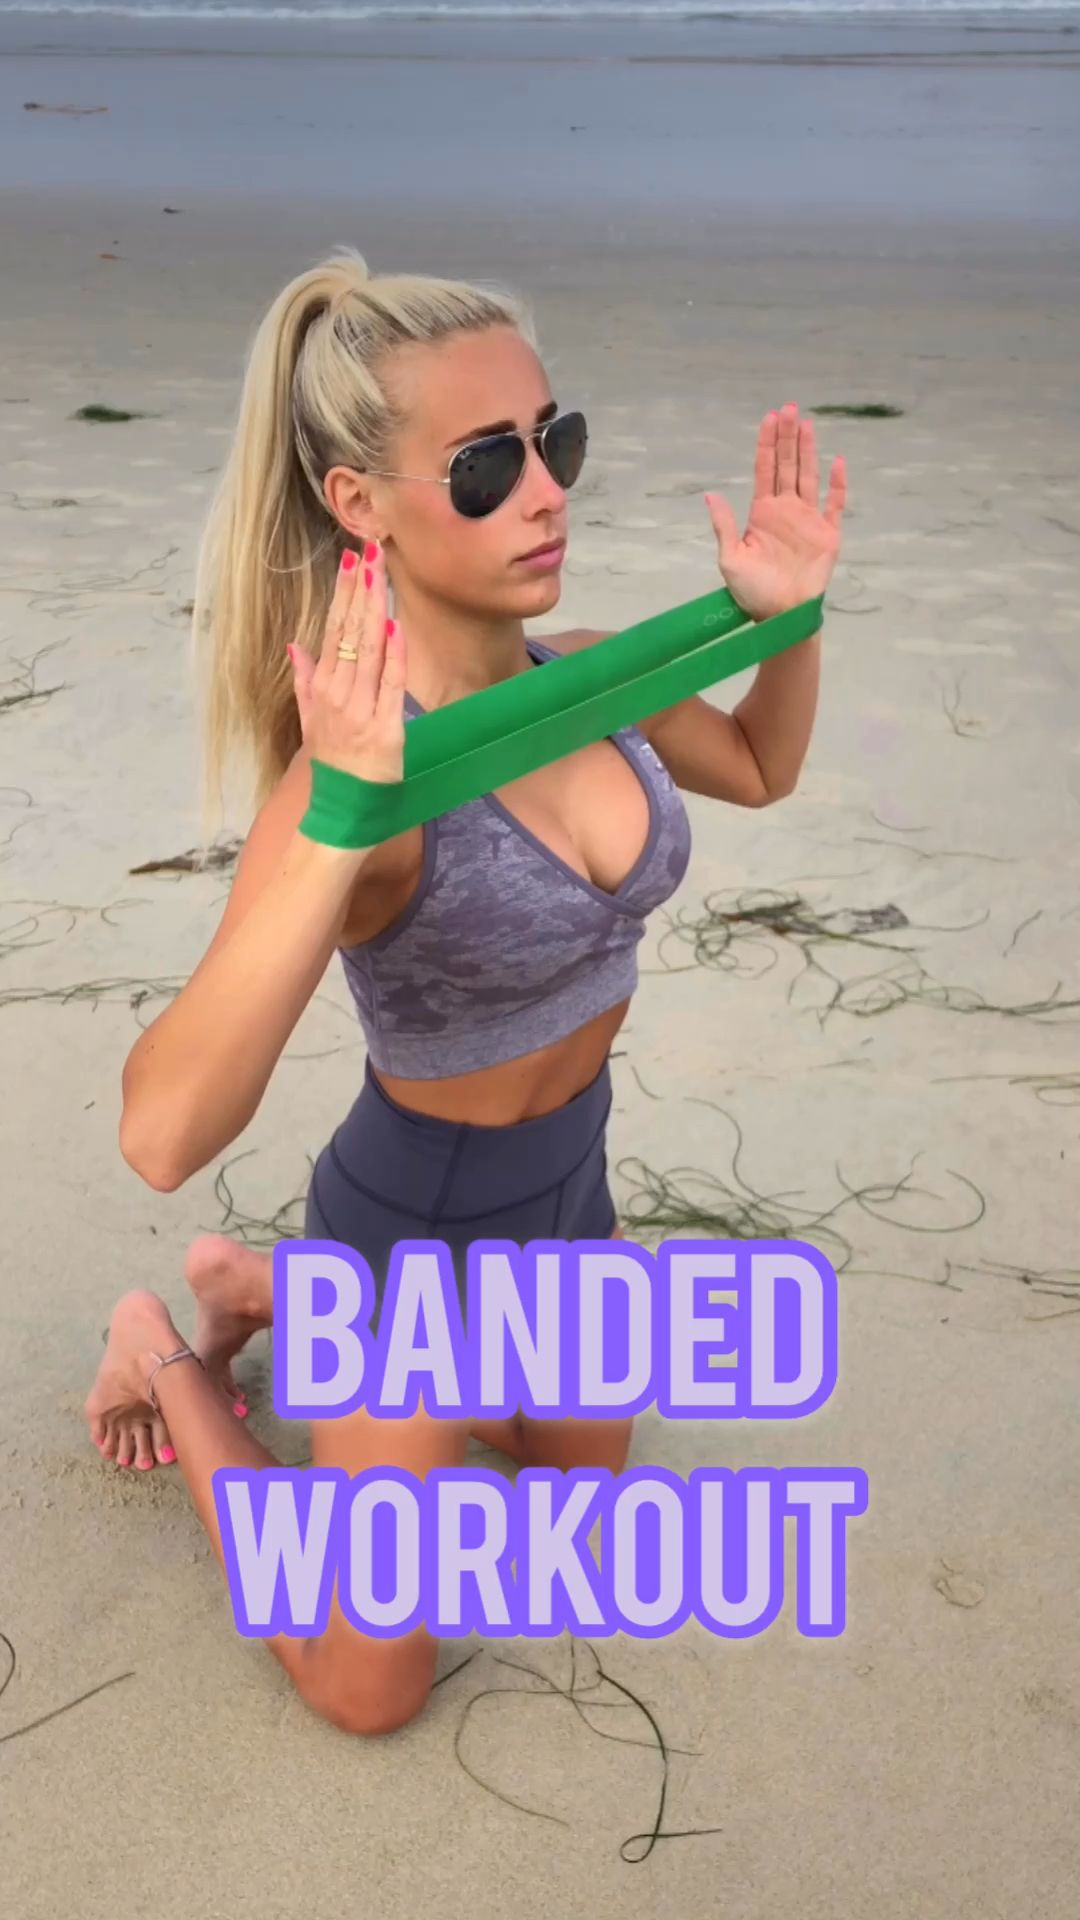 Banded Beach Workout- Follow @ambrymehr IG for free workouts!